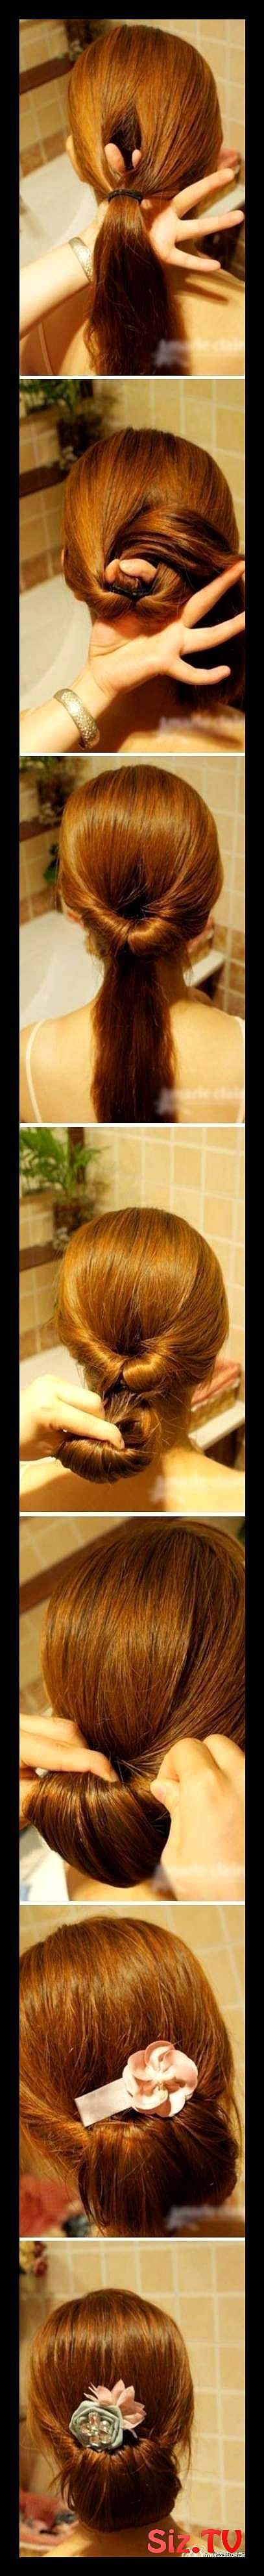 26 Ideas Hairstyles Updo Easy Lazy Girl Bobby Pins For 2019 26 Ideas Hairstyles Updo Easy Lazy Girl Bobby Pins For 2019 26 Ideas Hairstyles Updo Easy ...